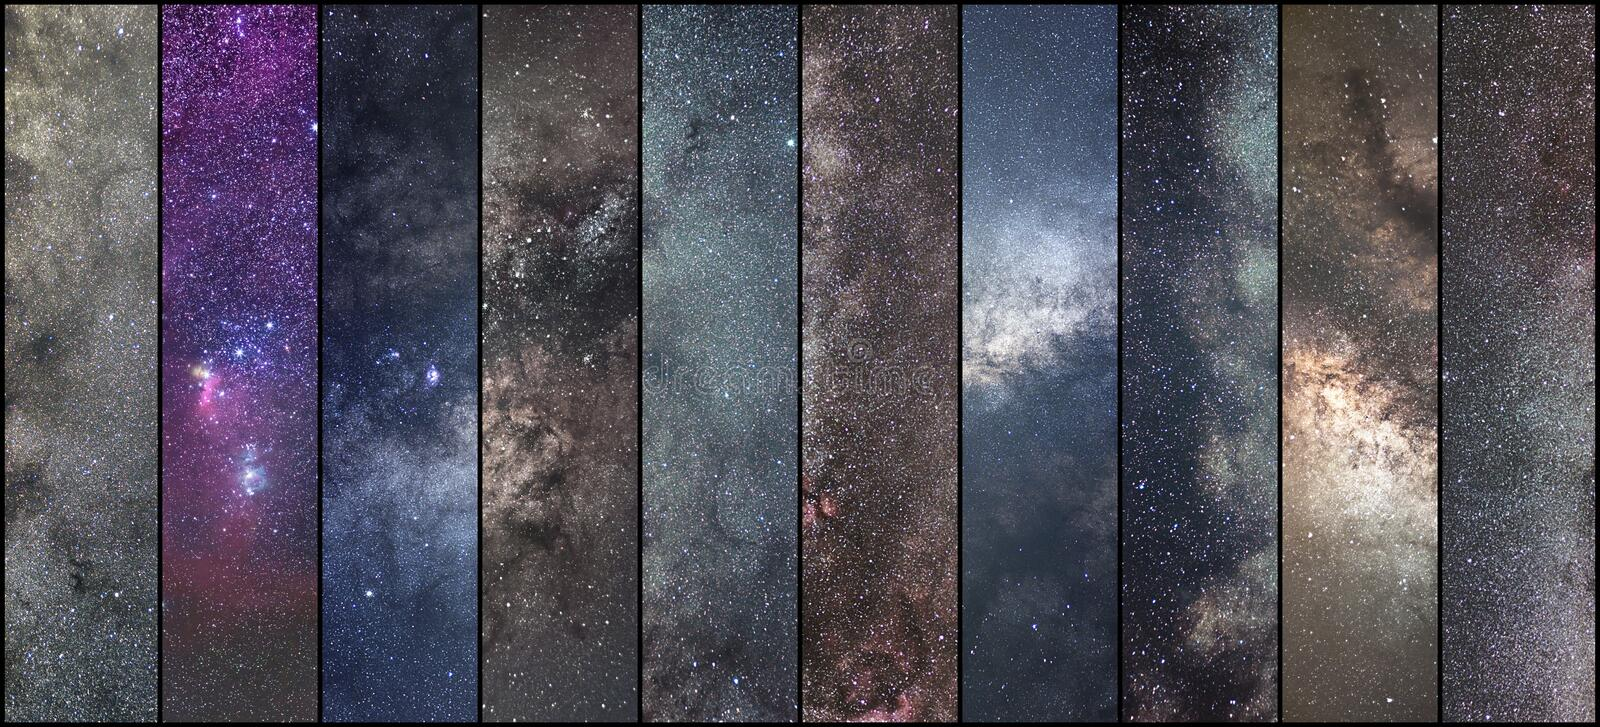 Space collage. Astronomy collage. Astrophotography collage. univ. Erse. Long exposure photography stock photo